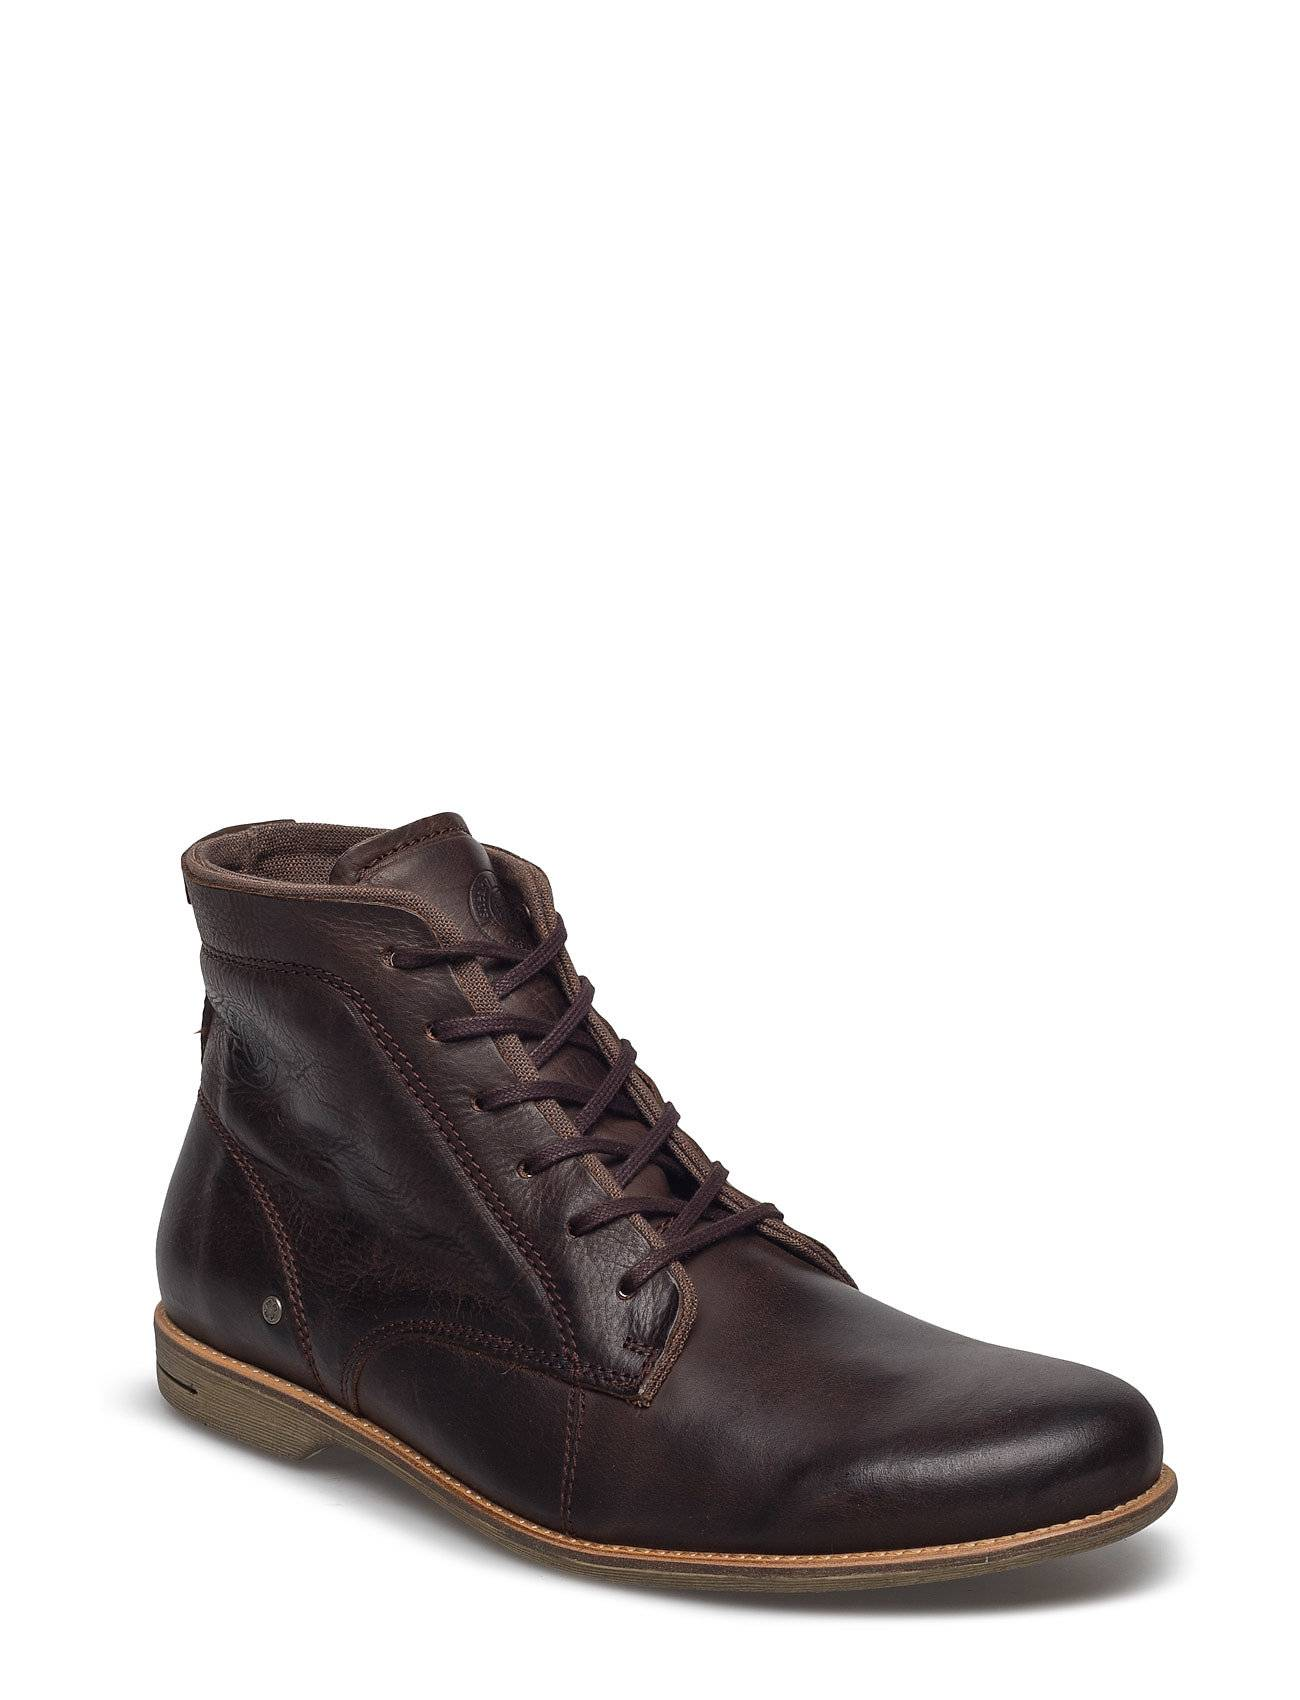 Sneaky Steve Scotter Leather Shoe